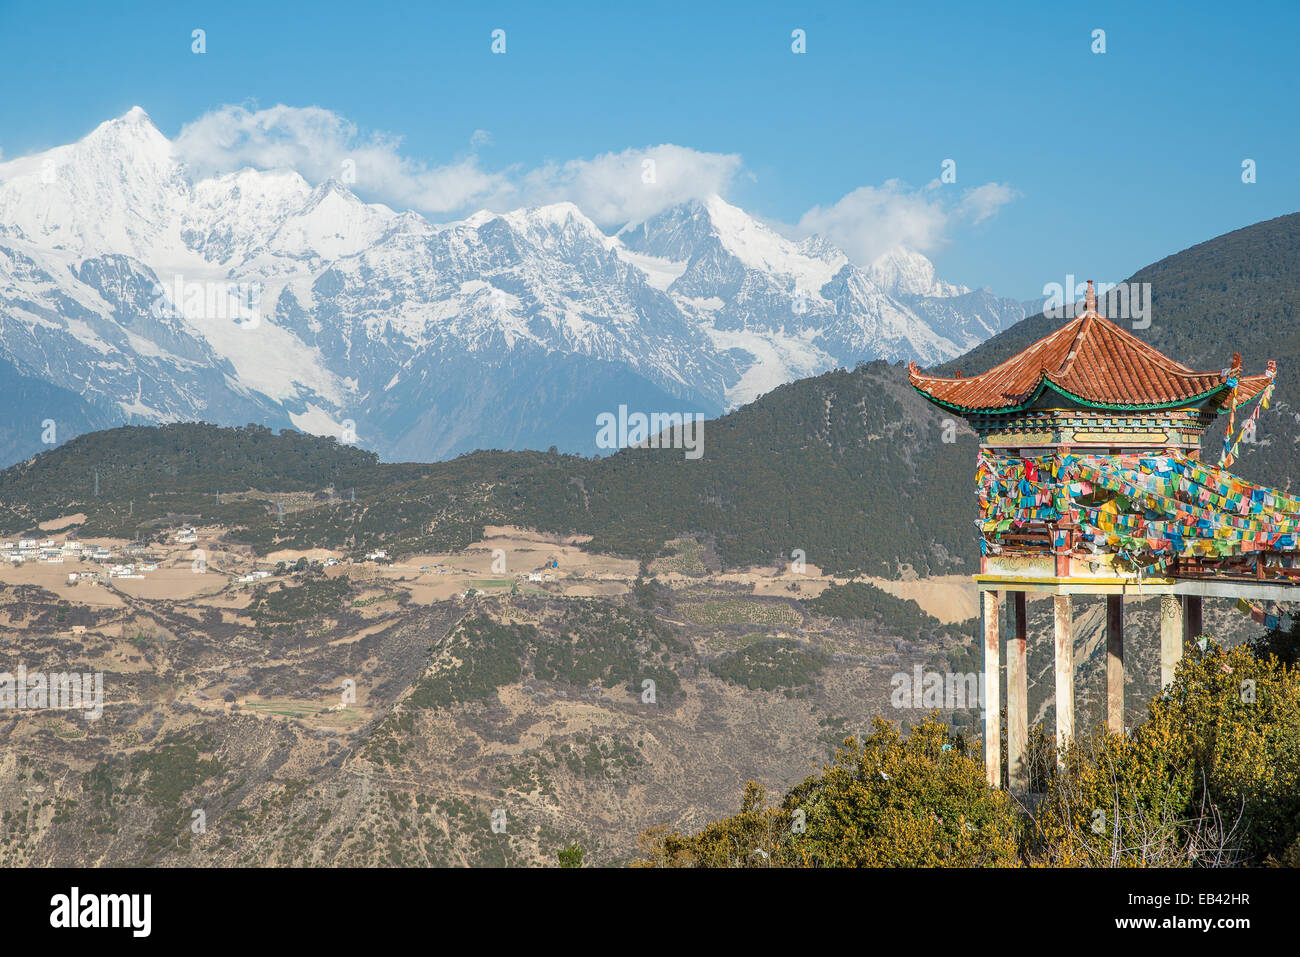 Tibet pavilion and Meili Snow Mountain in Yunnan - Stock Image